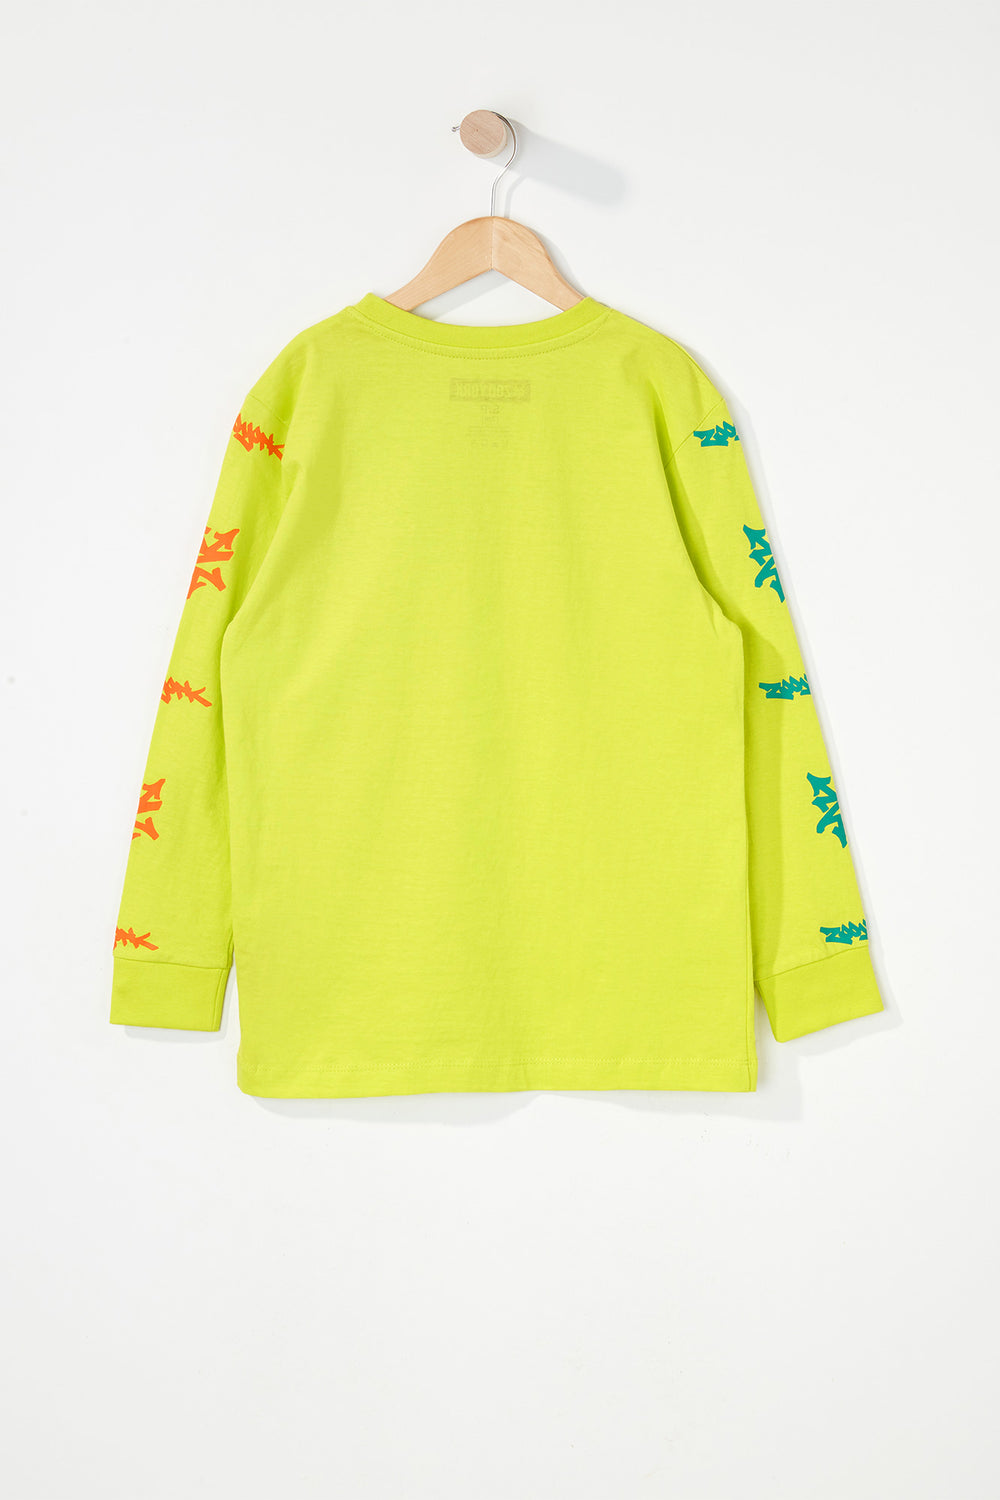 Zoo York Boys Practice Truth Long Sleeve Shirt Yellow